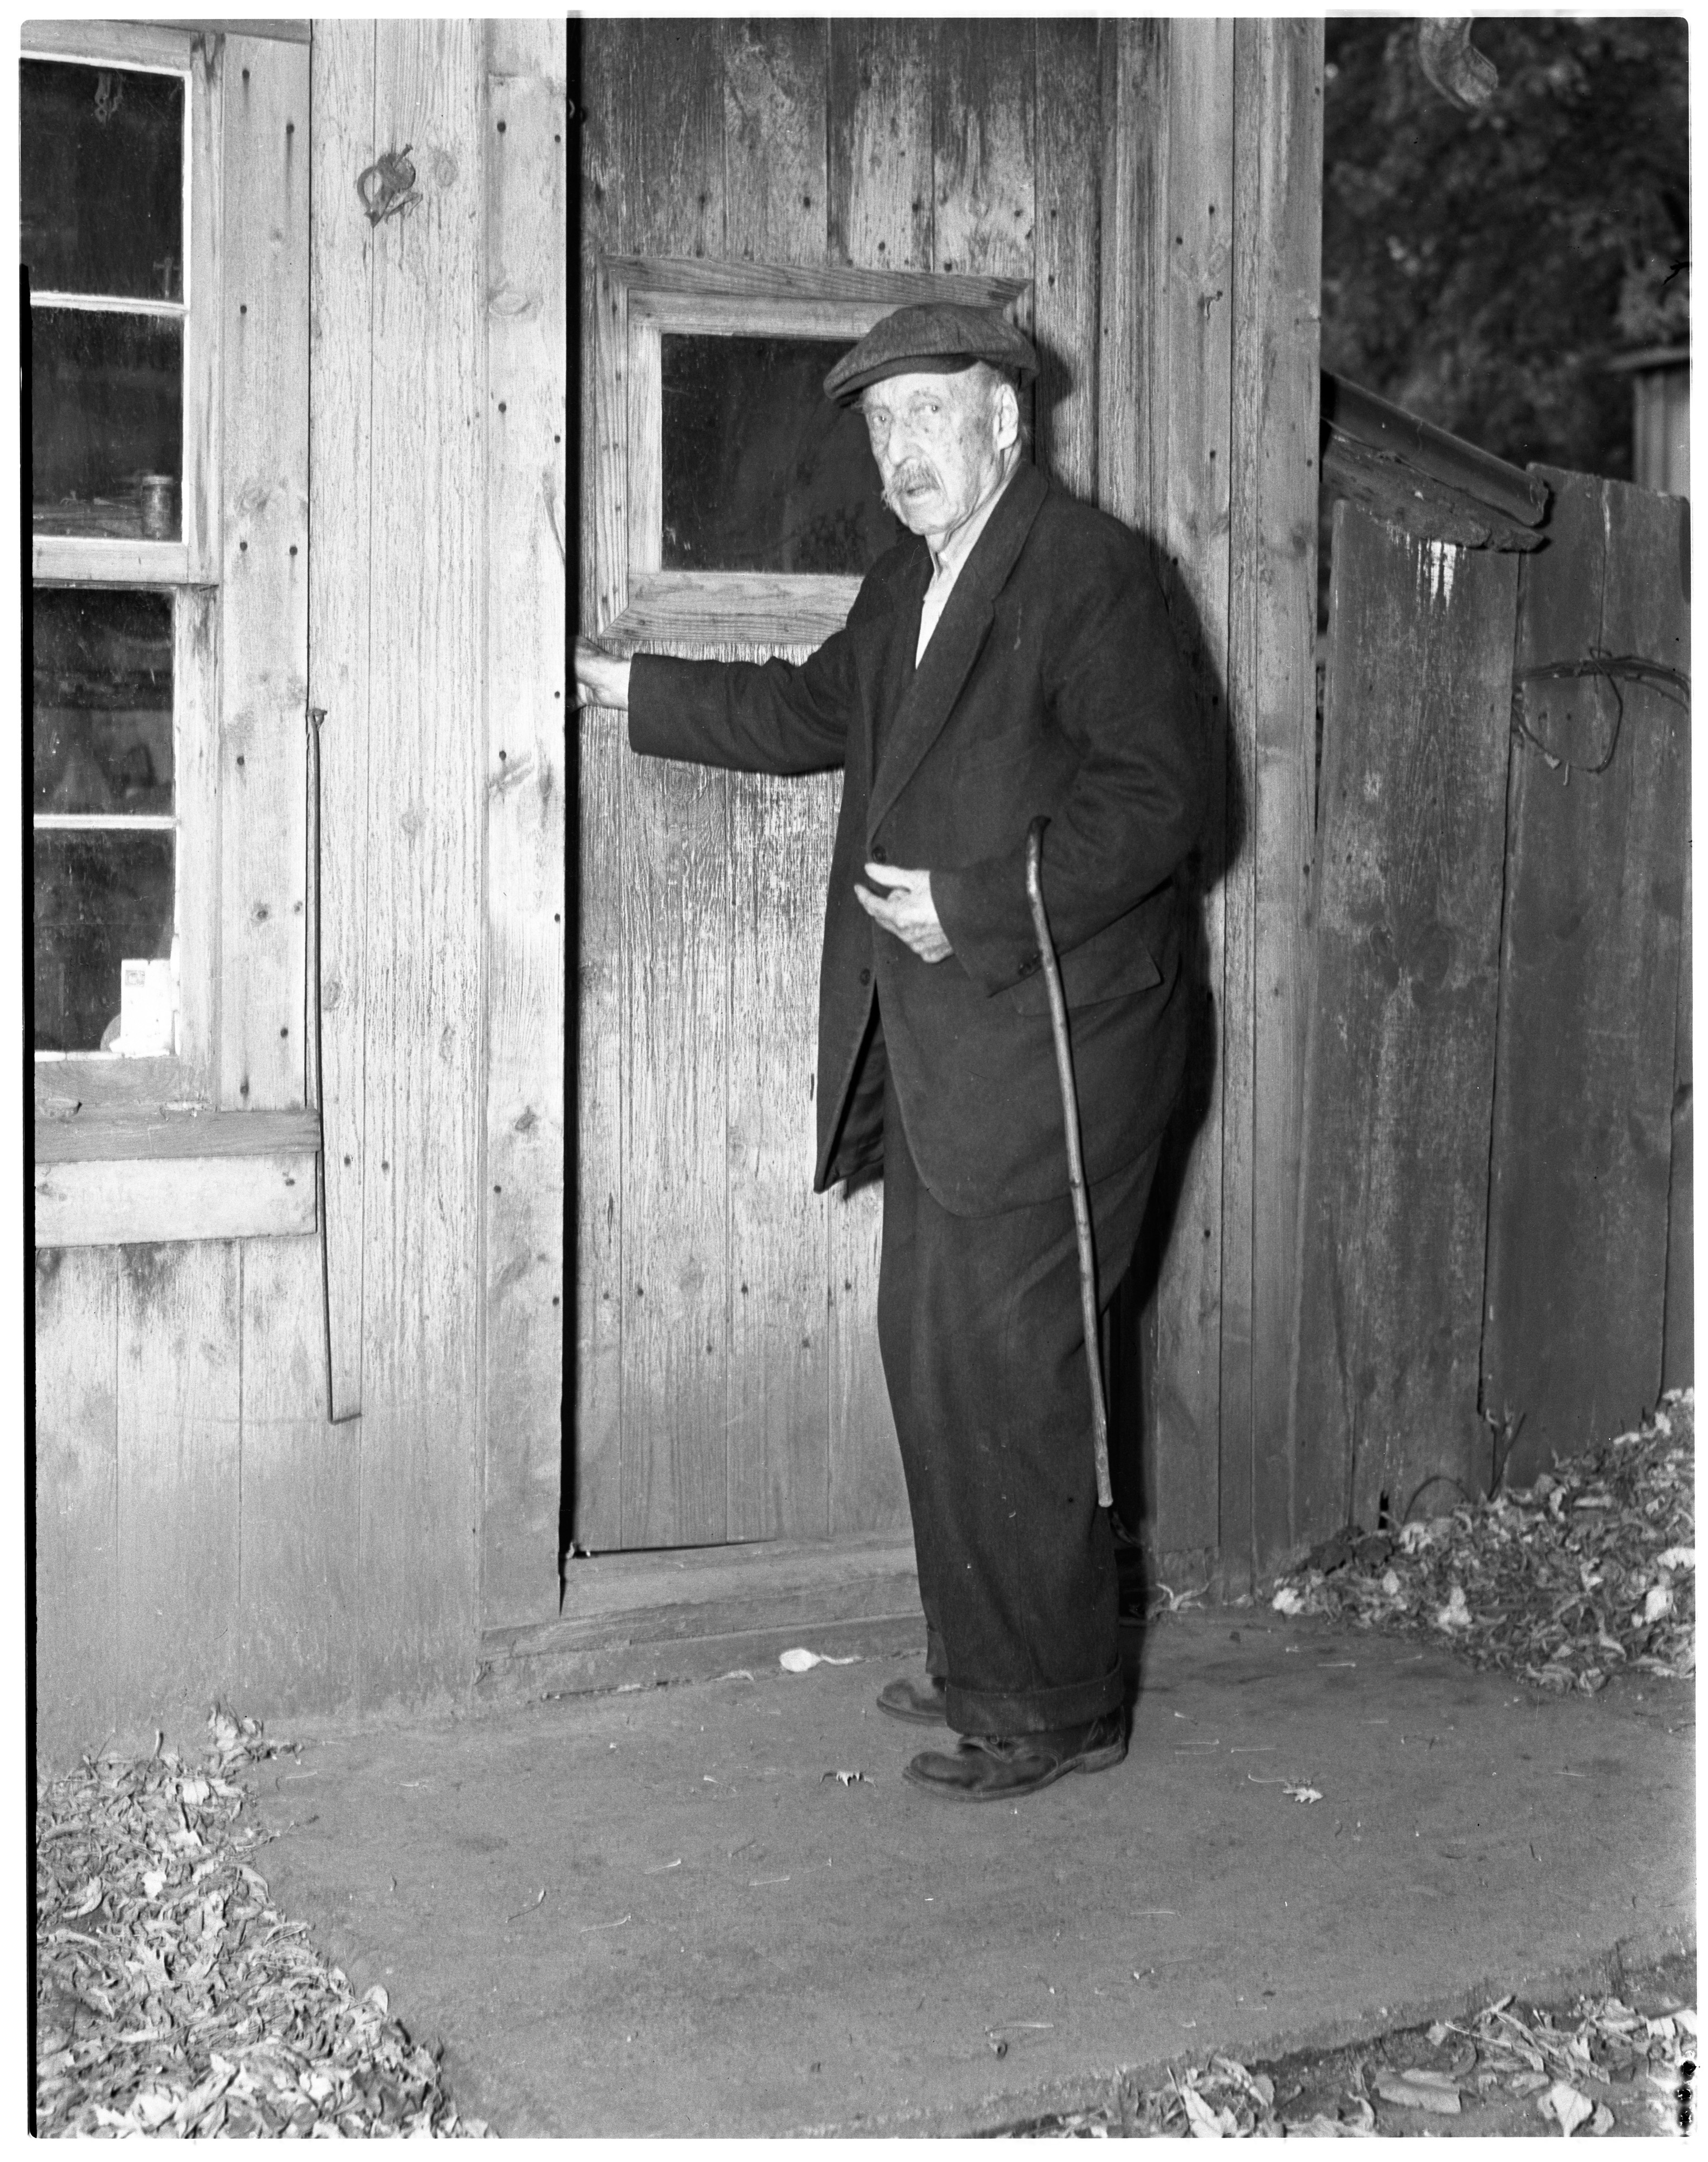 Alfred Daniels, Saline's oldest resident, at Saline Veterinary, Oldest Resident, 1937 image